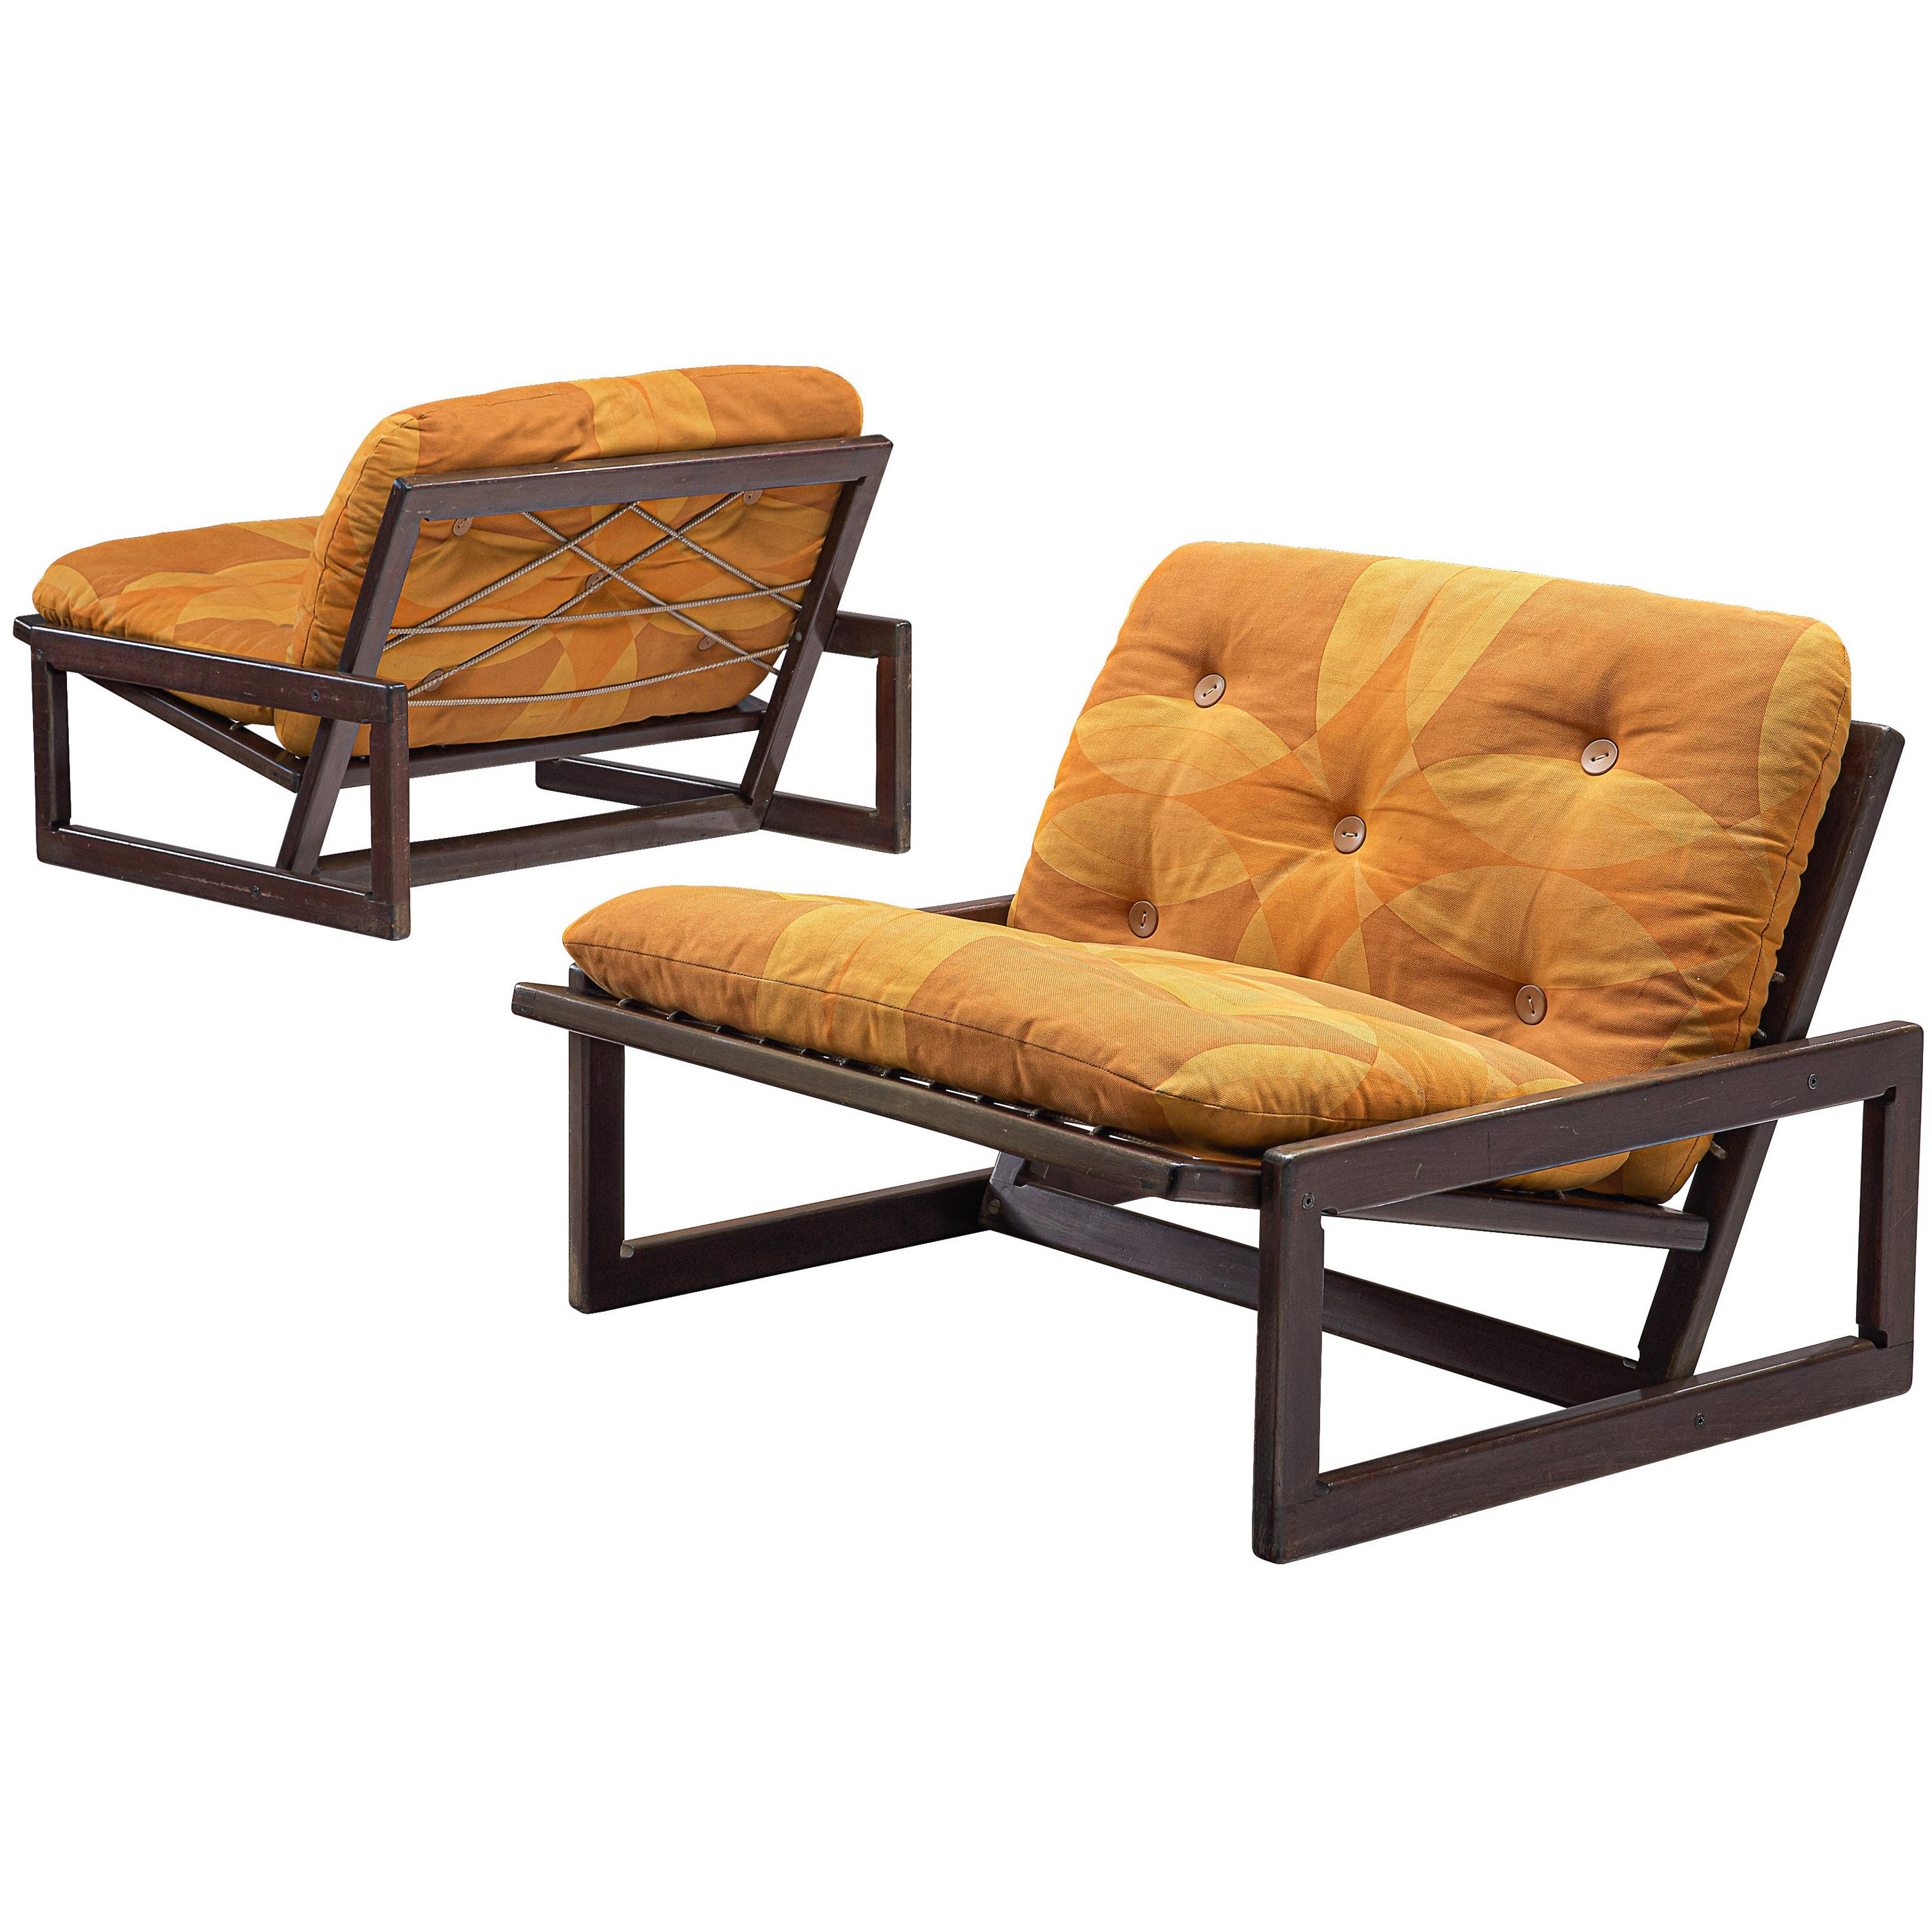 Pair of 'Carlotta' Lounge Chairs by Afra & Tobia Scarpa for Cassina